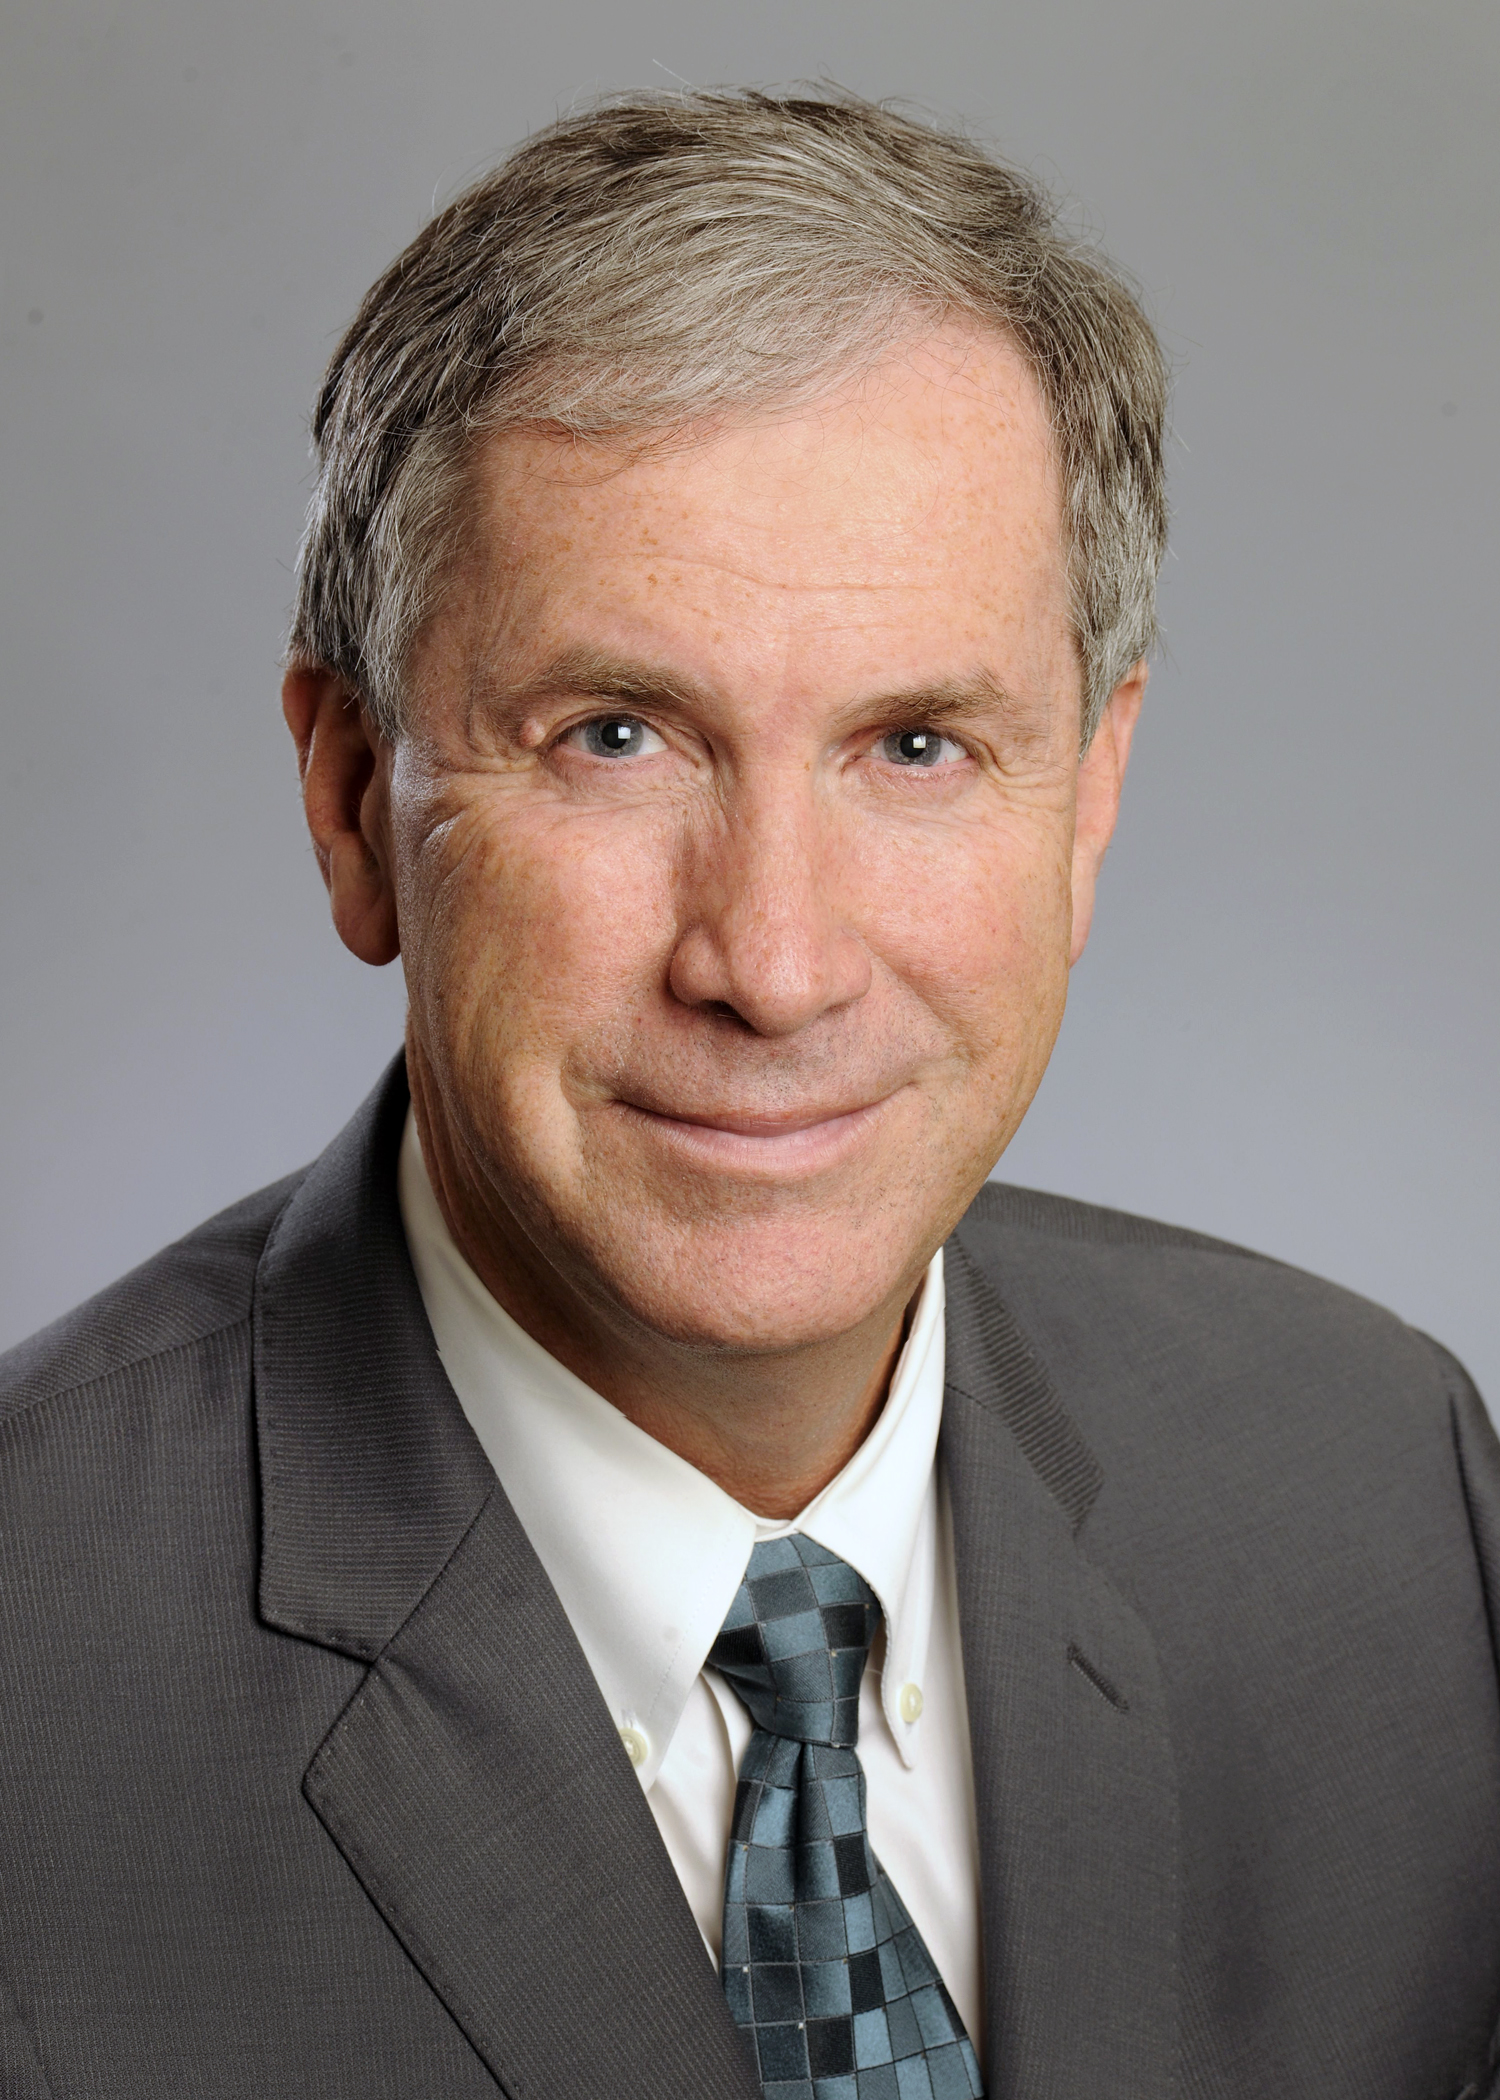 David S. Stephens, MD,  Chairman, Department of Medicine, Emory University, Vice President for Research, Woodruff Health Sciences Center